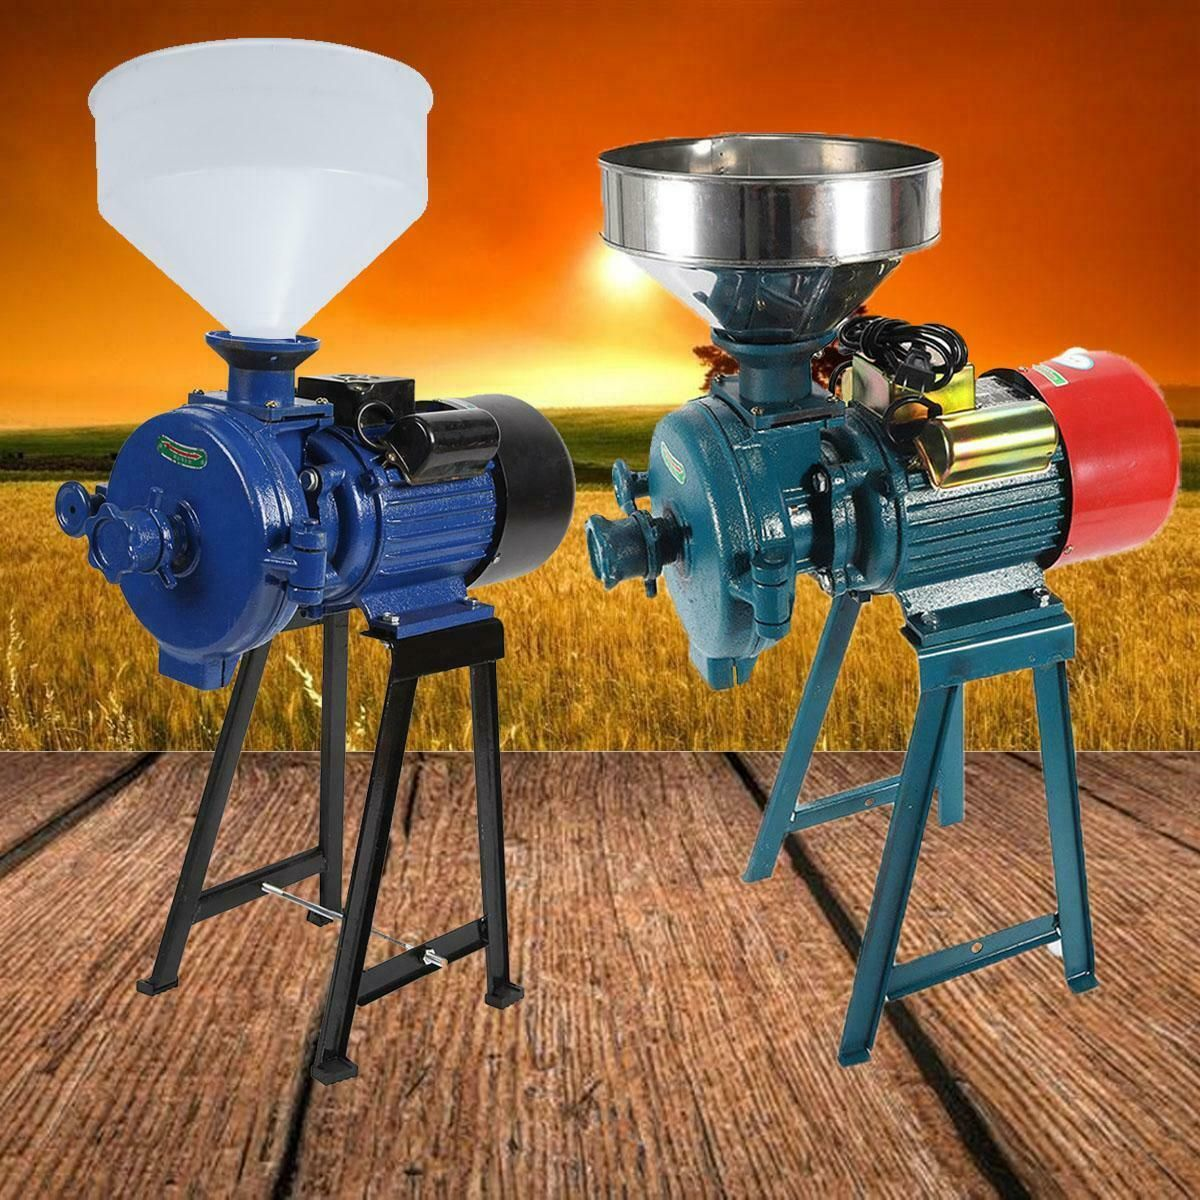 Details about Electric Mill Wet Dry Grinder Machine For